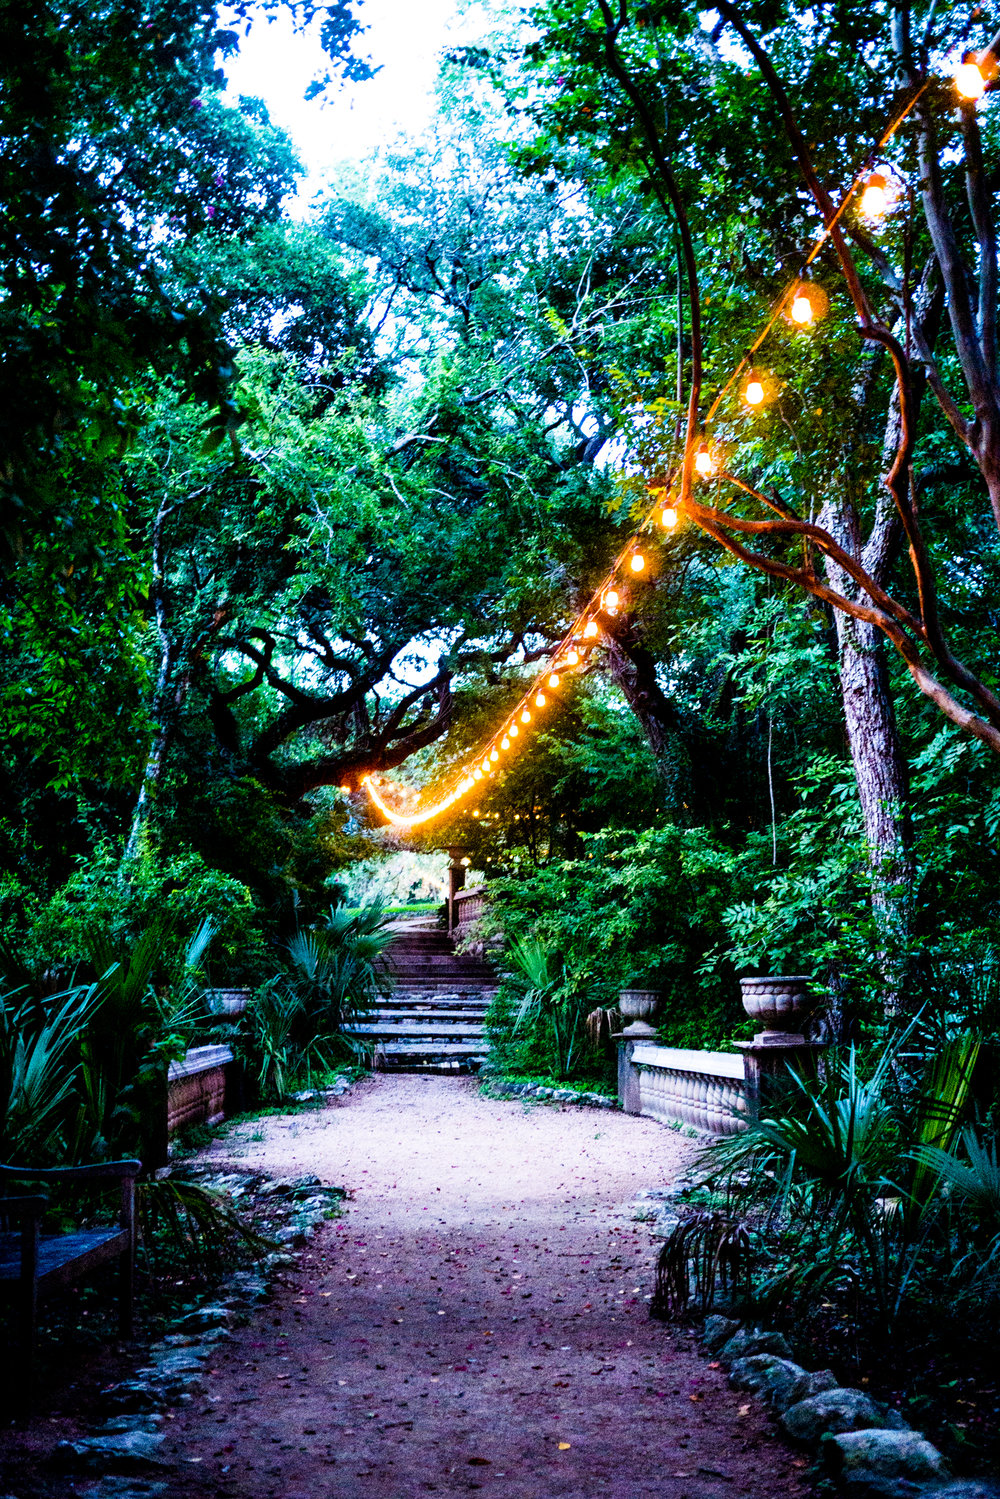 The path to art school,tucked under trees and strung lights.